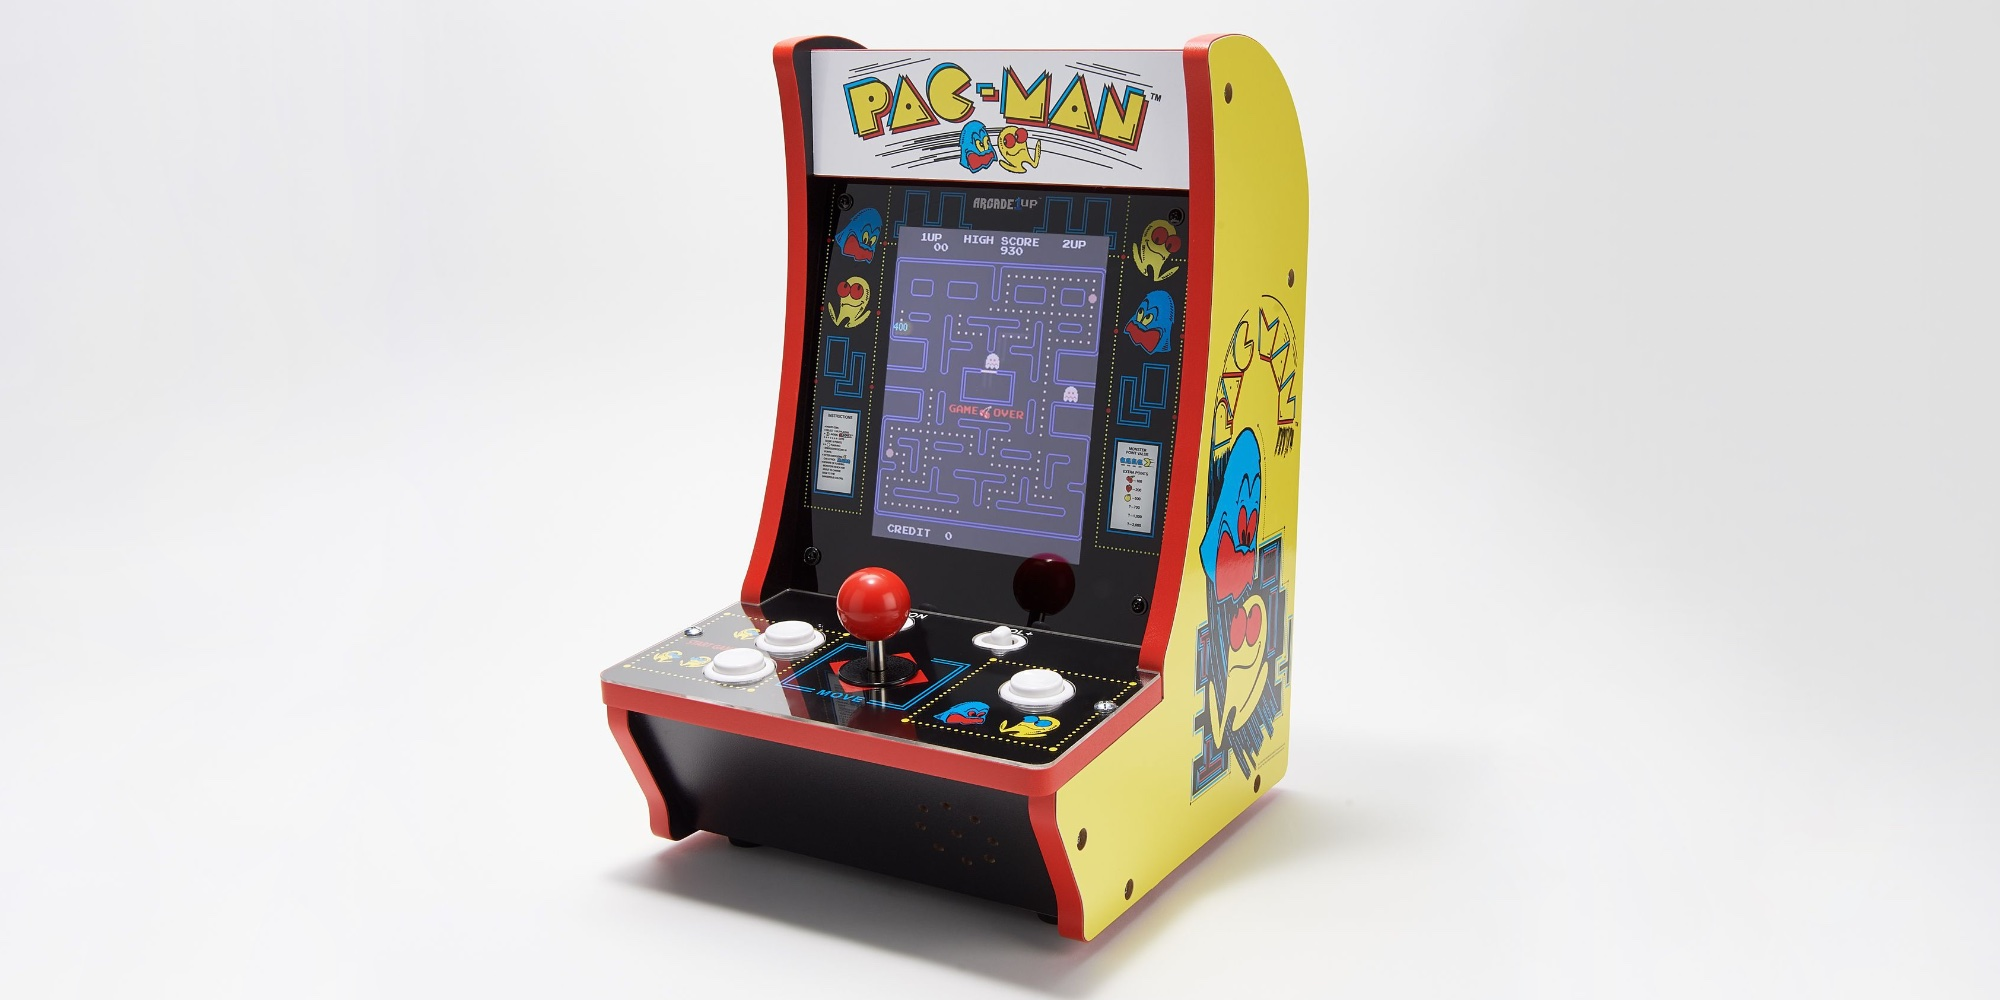 Arcade1up S Countercades Fall To New All Time Lows From 90 Up To 40 Off 9to5toys